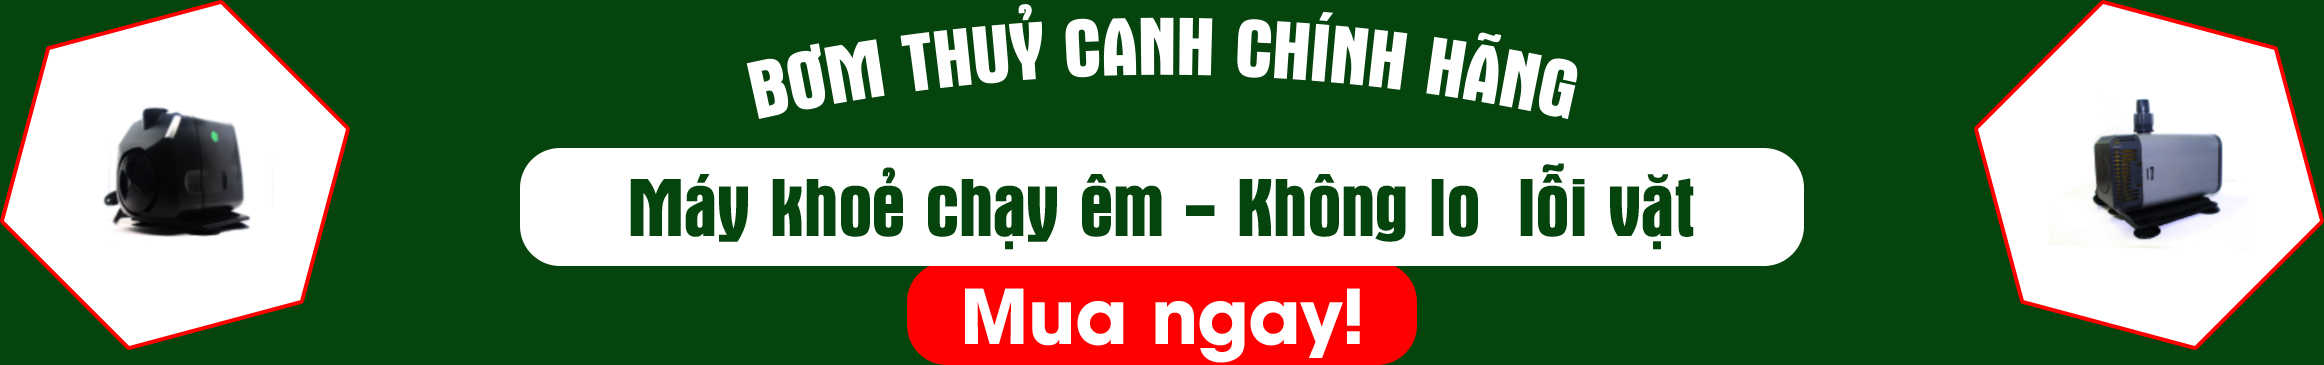 may-bom-thuy-canh-may-khoe-chay-em